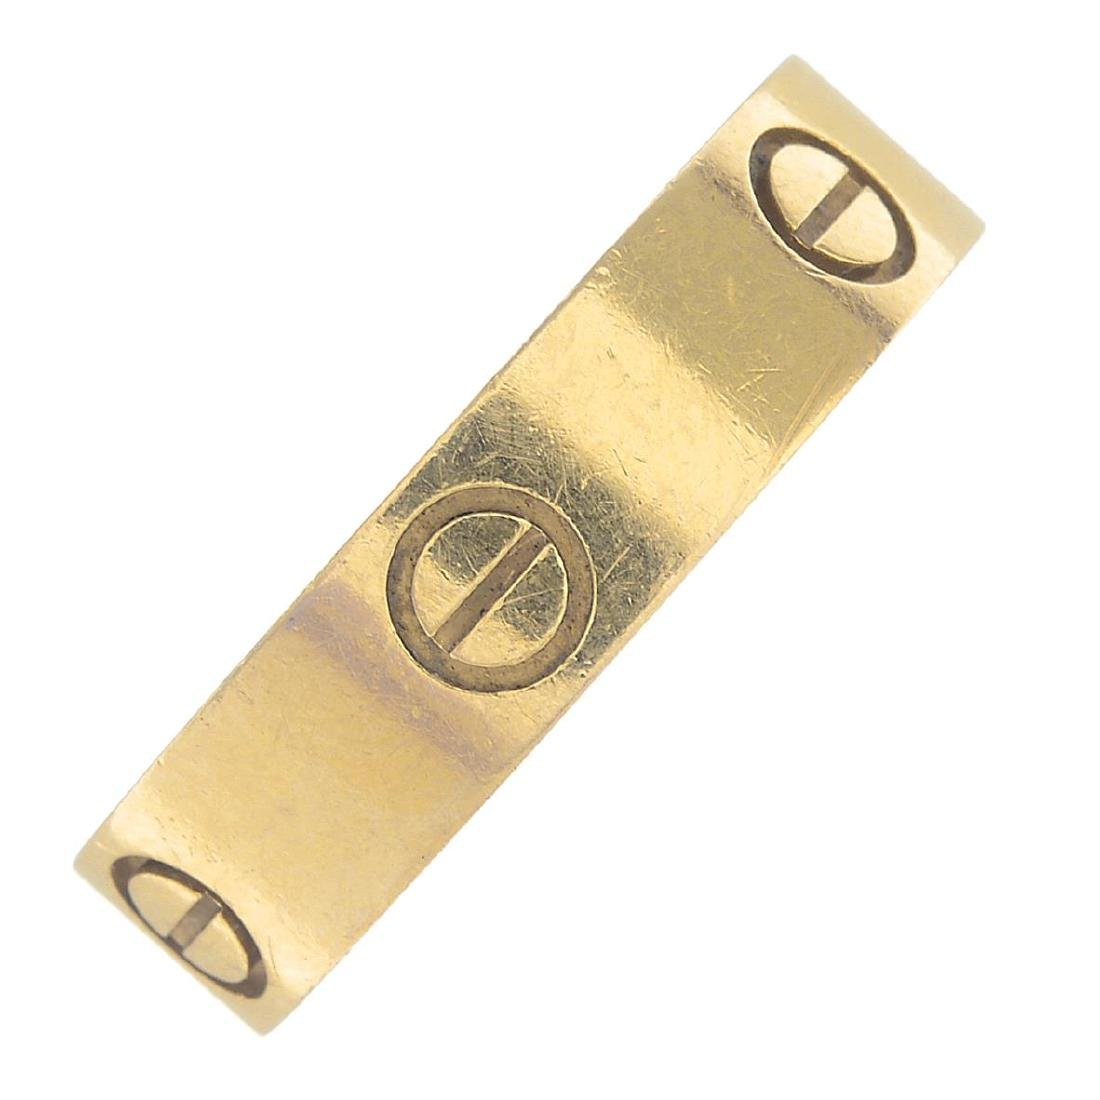 CARTIER - an 18ct gold 'Love' ring. Designed as a